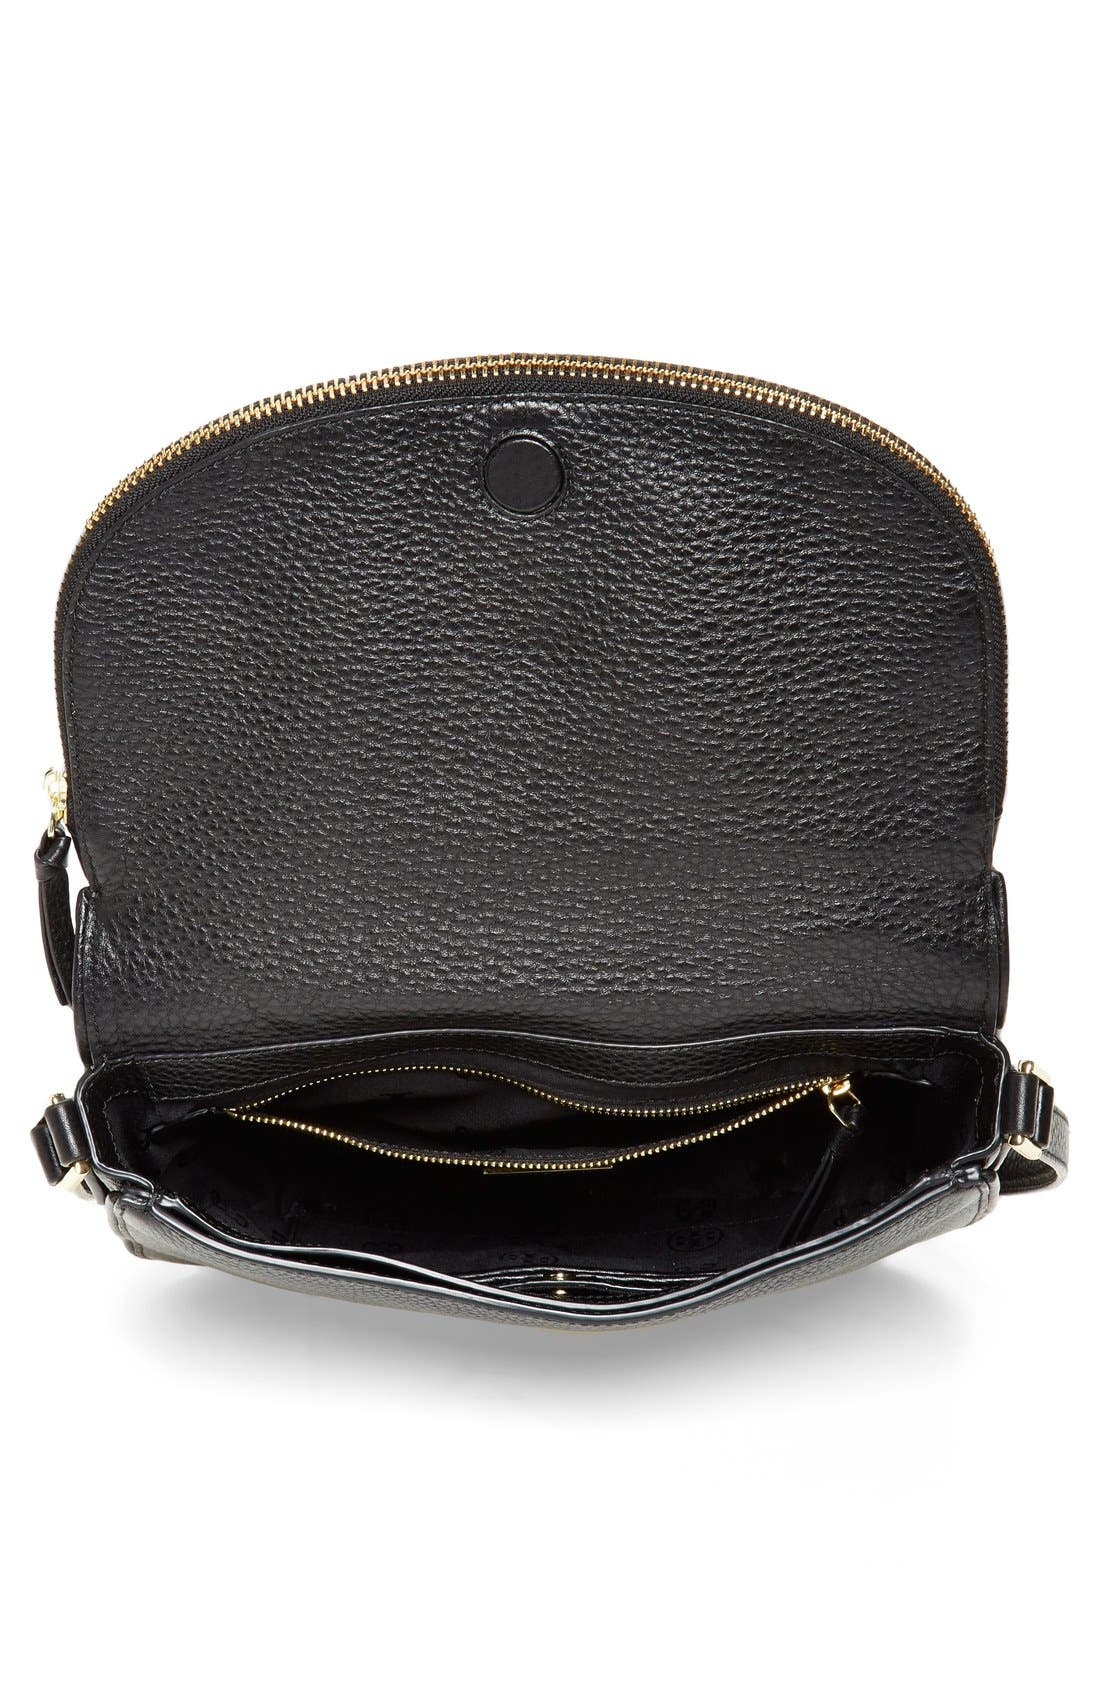 'Robinson' Pebbled Leather Shoulder Bag,                             Alternate thumbnail 5, color,                             001